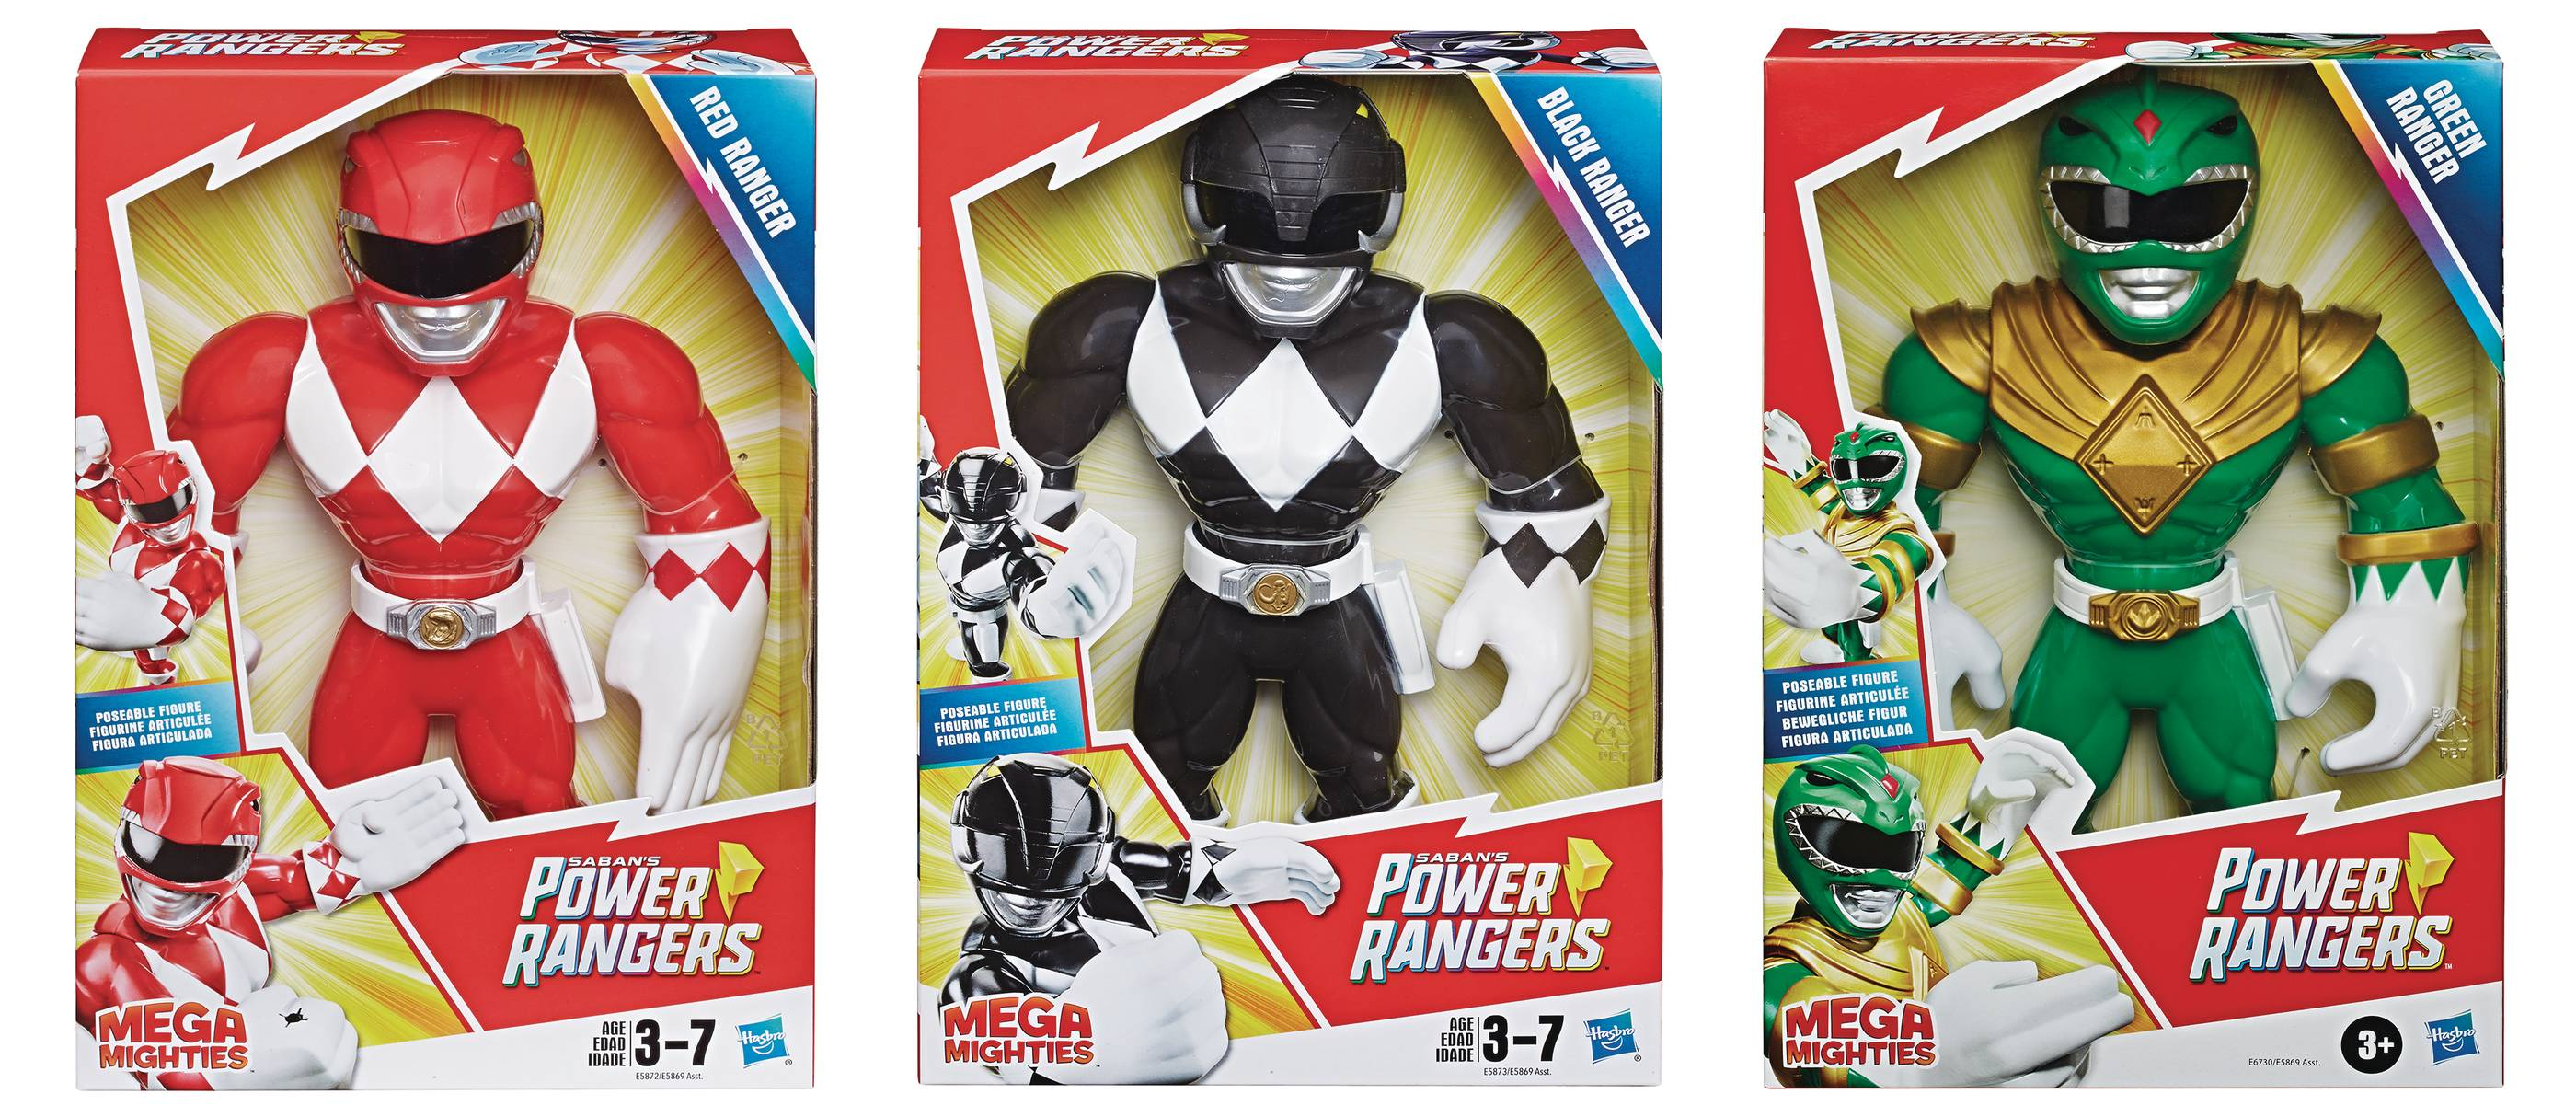 POWER RANGERS PSH MEGA MIGHTIES AF ASST 202002